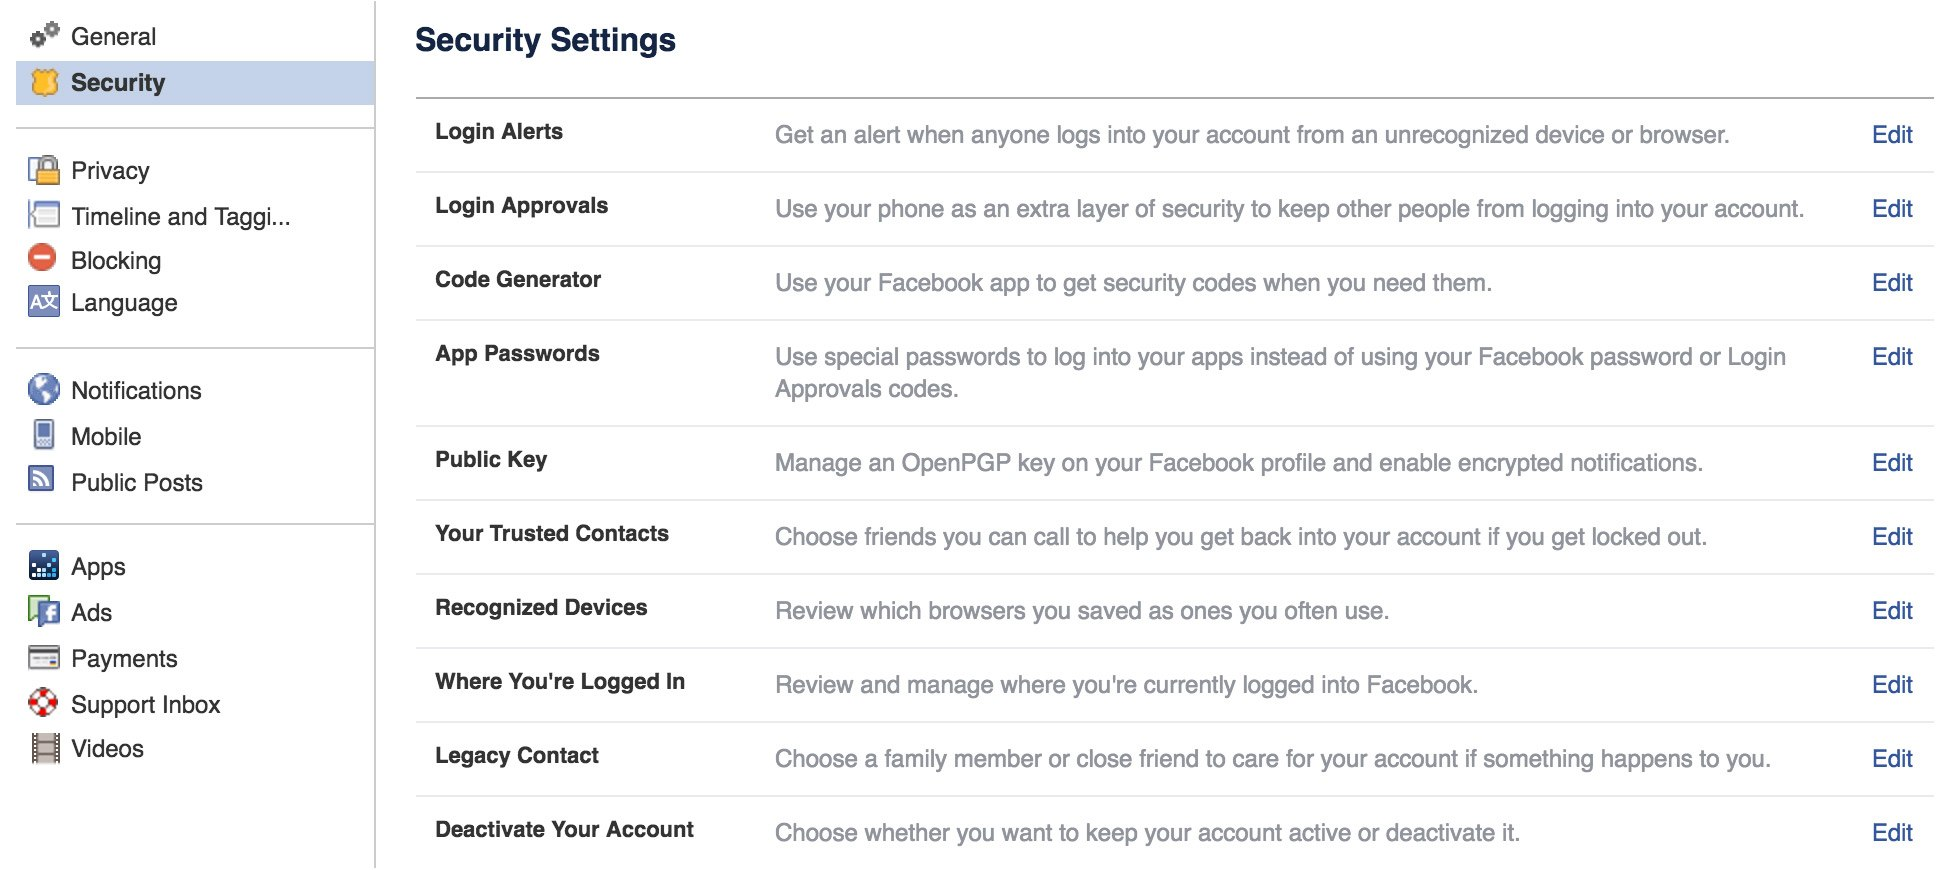 Everything you need to know about Facebook security settings